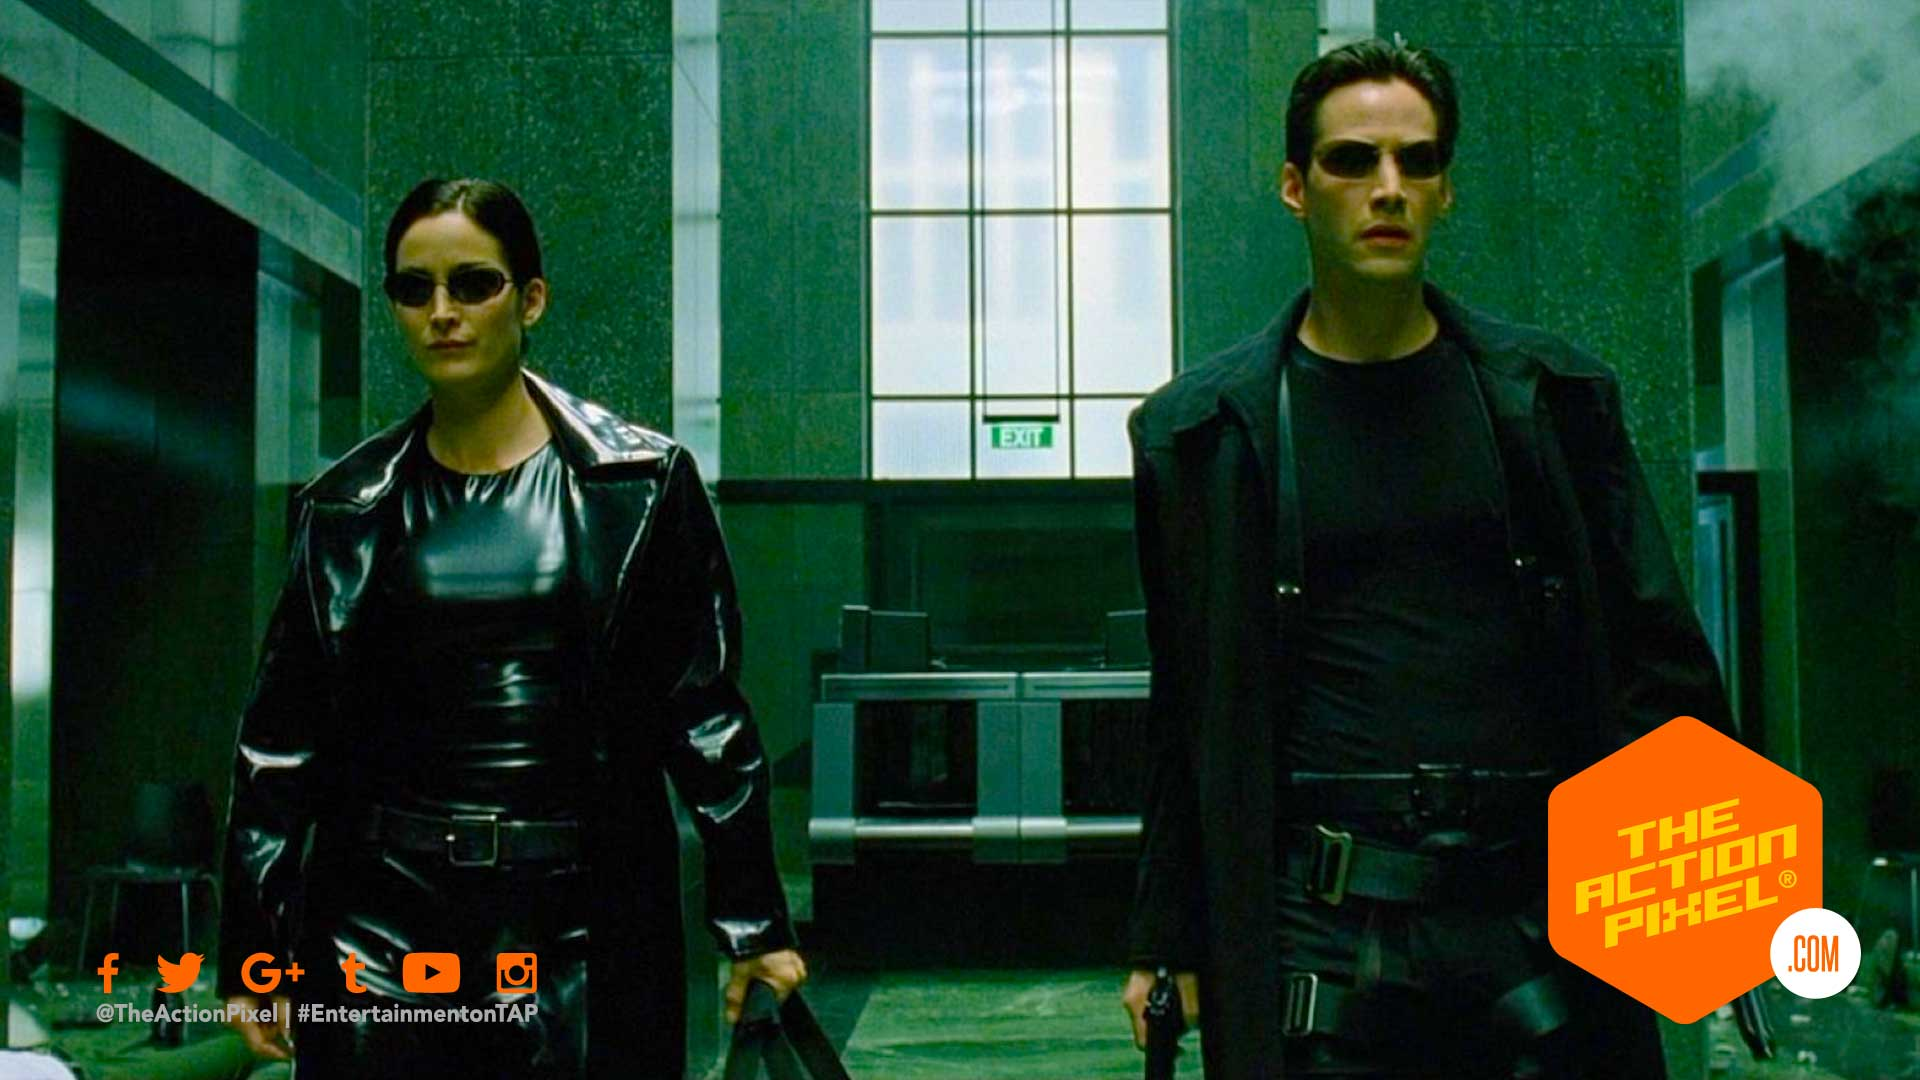 trinity, neo, matrix, matrix 4, the matrix, carrie-anne moss, keanu reeves, the action pixel, entertainment on tap,